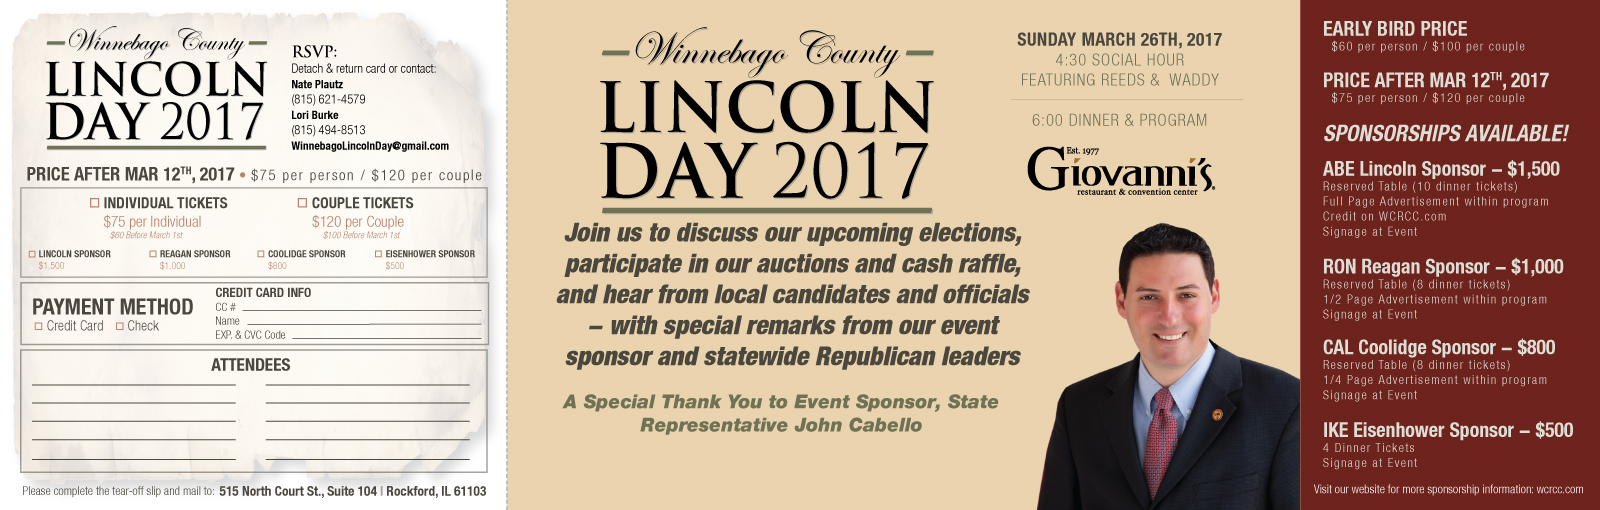 2017 LINCOLN DAY DINNER AND PROGRAM — MARCH 26, 2017!!